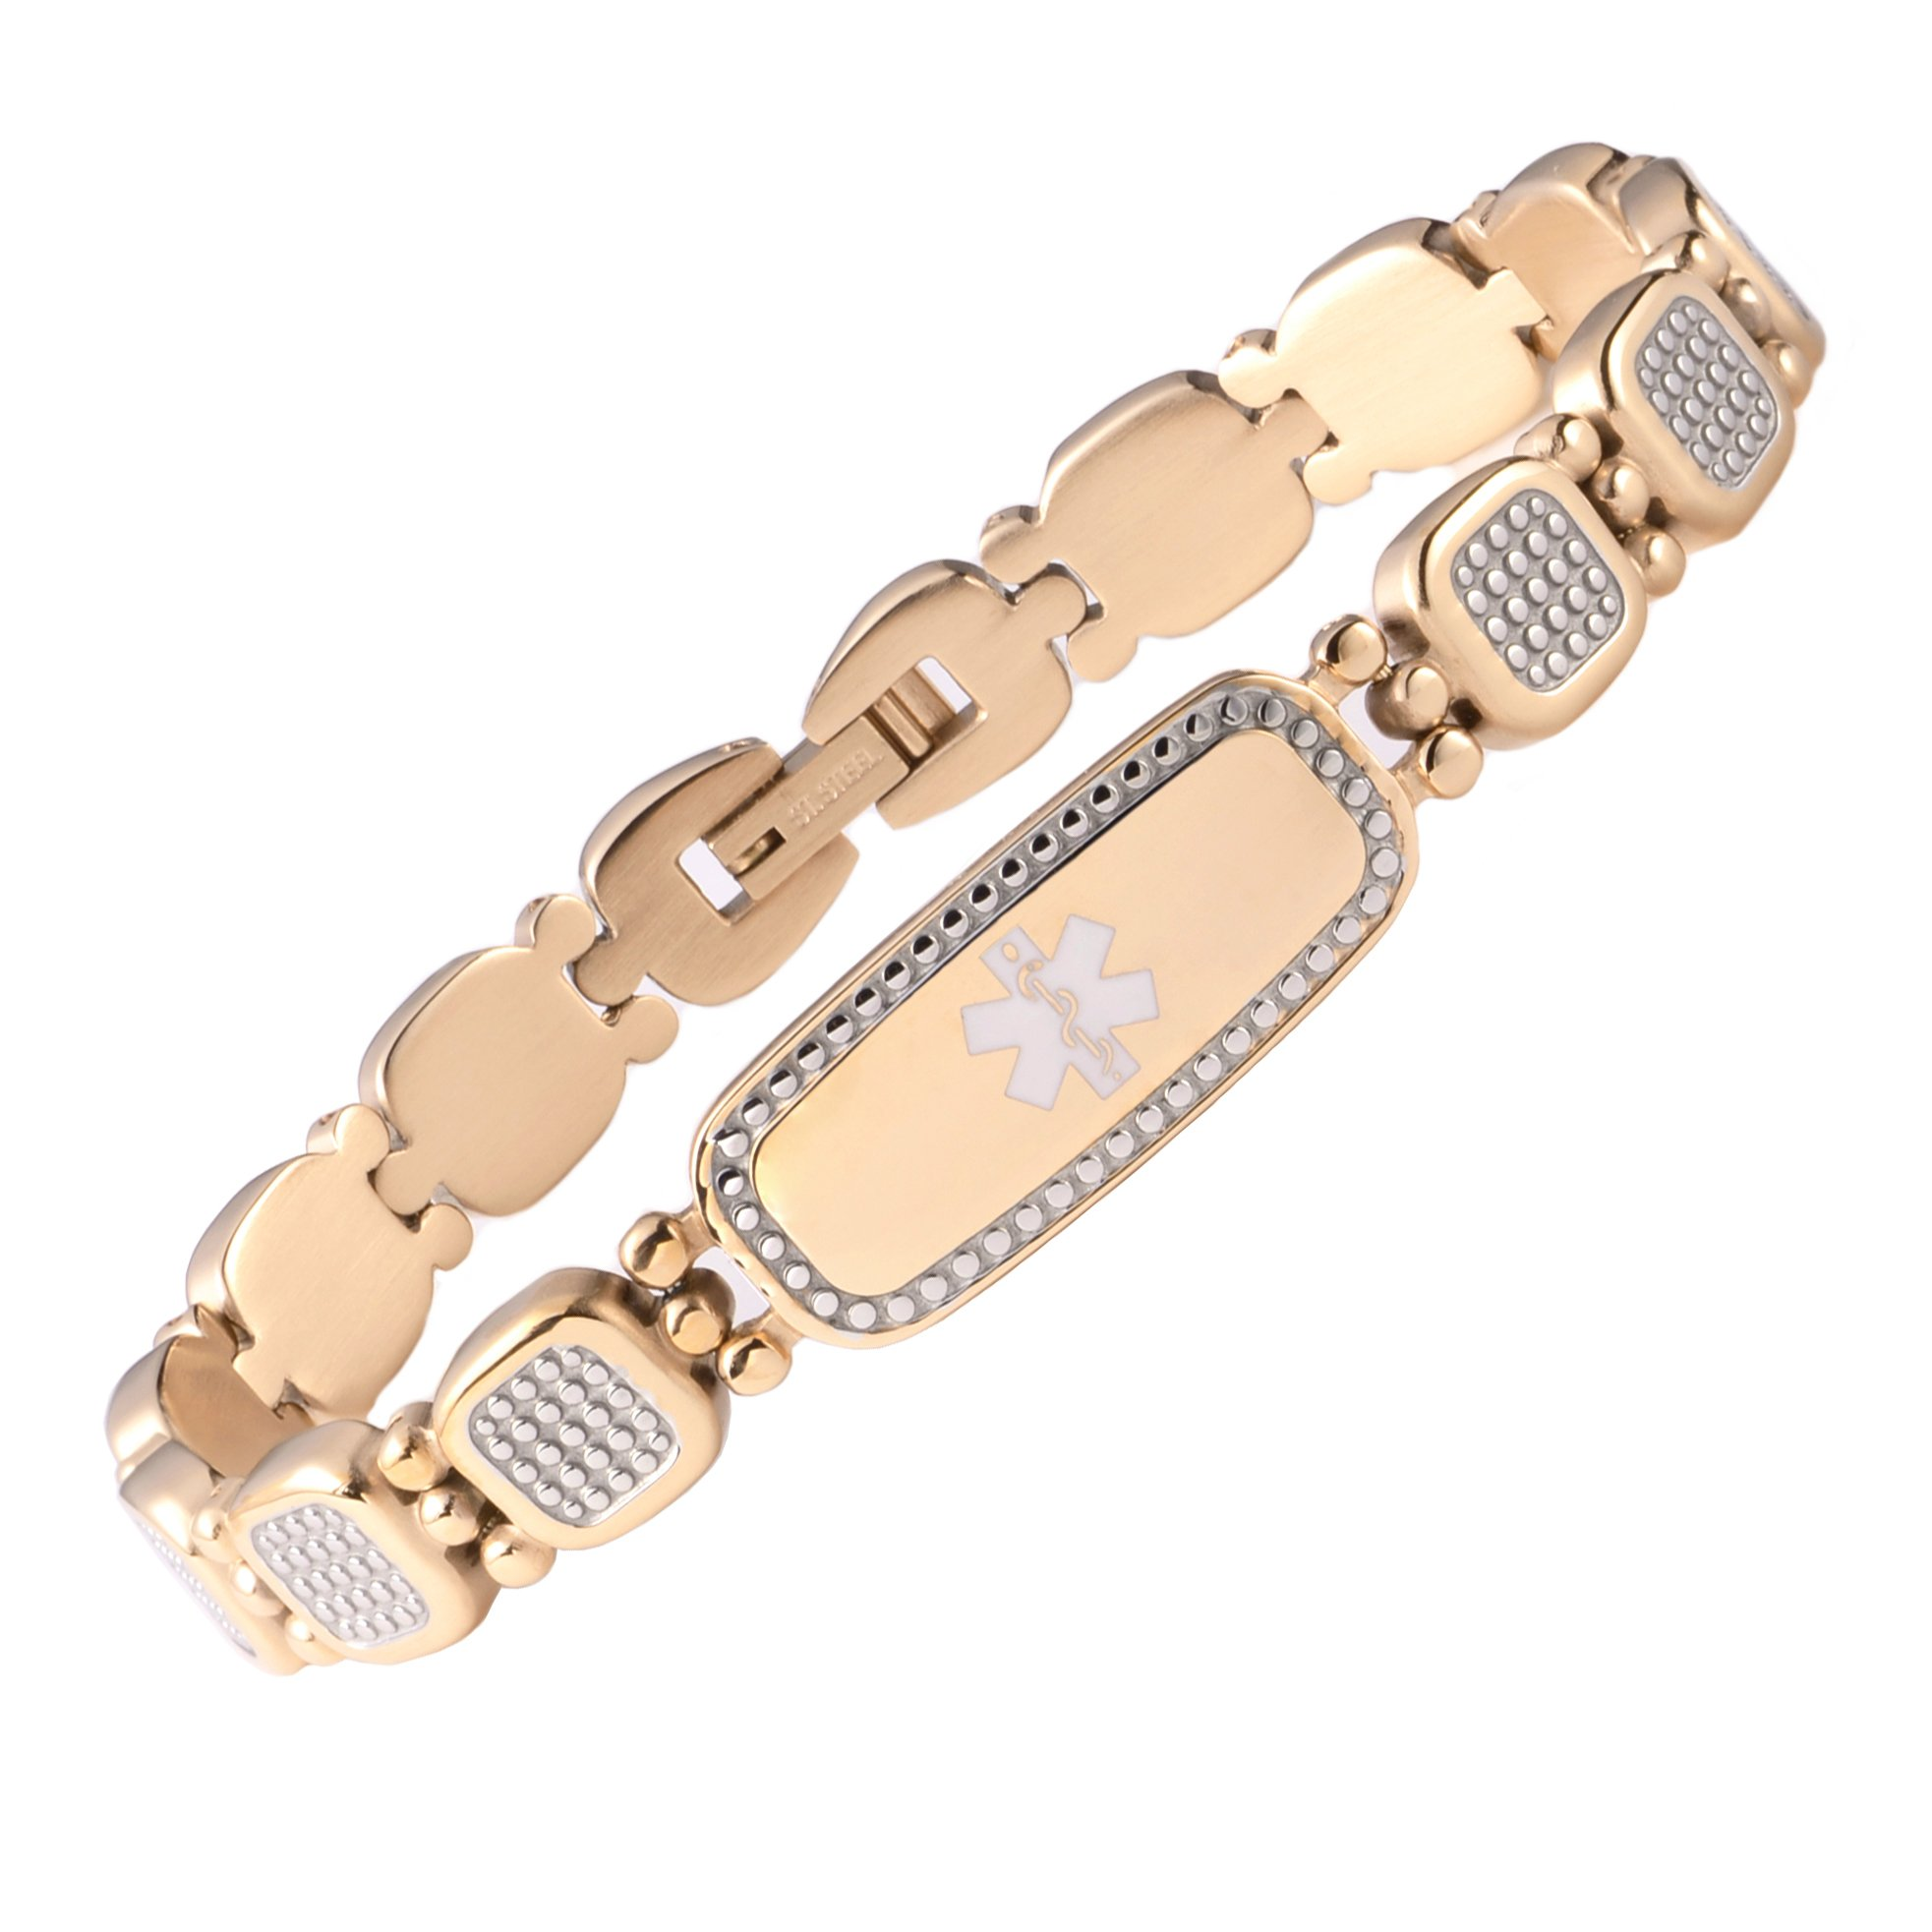 Tarring Gold Shiny Star identification Bracelets for Women with Medical condition Free Engraving(6.5)